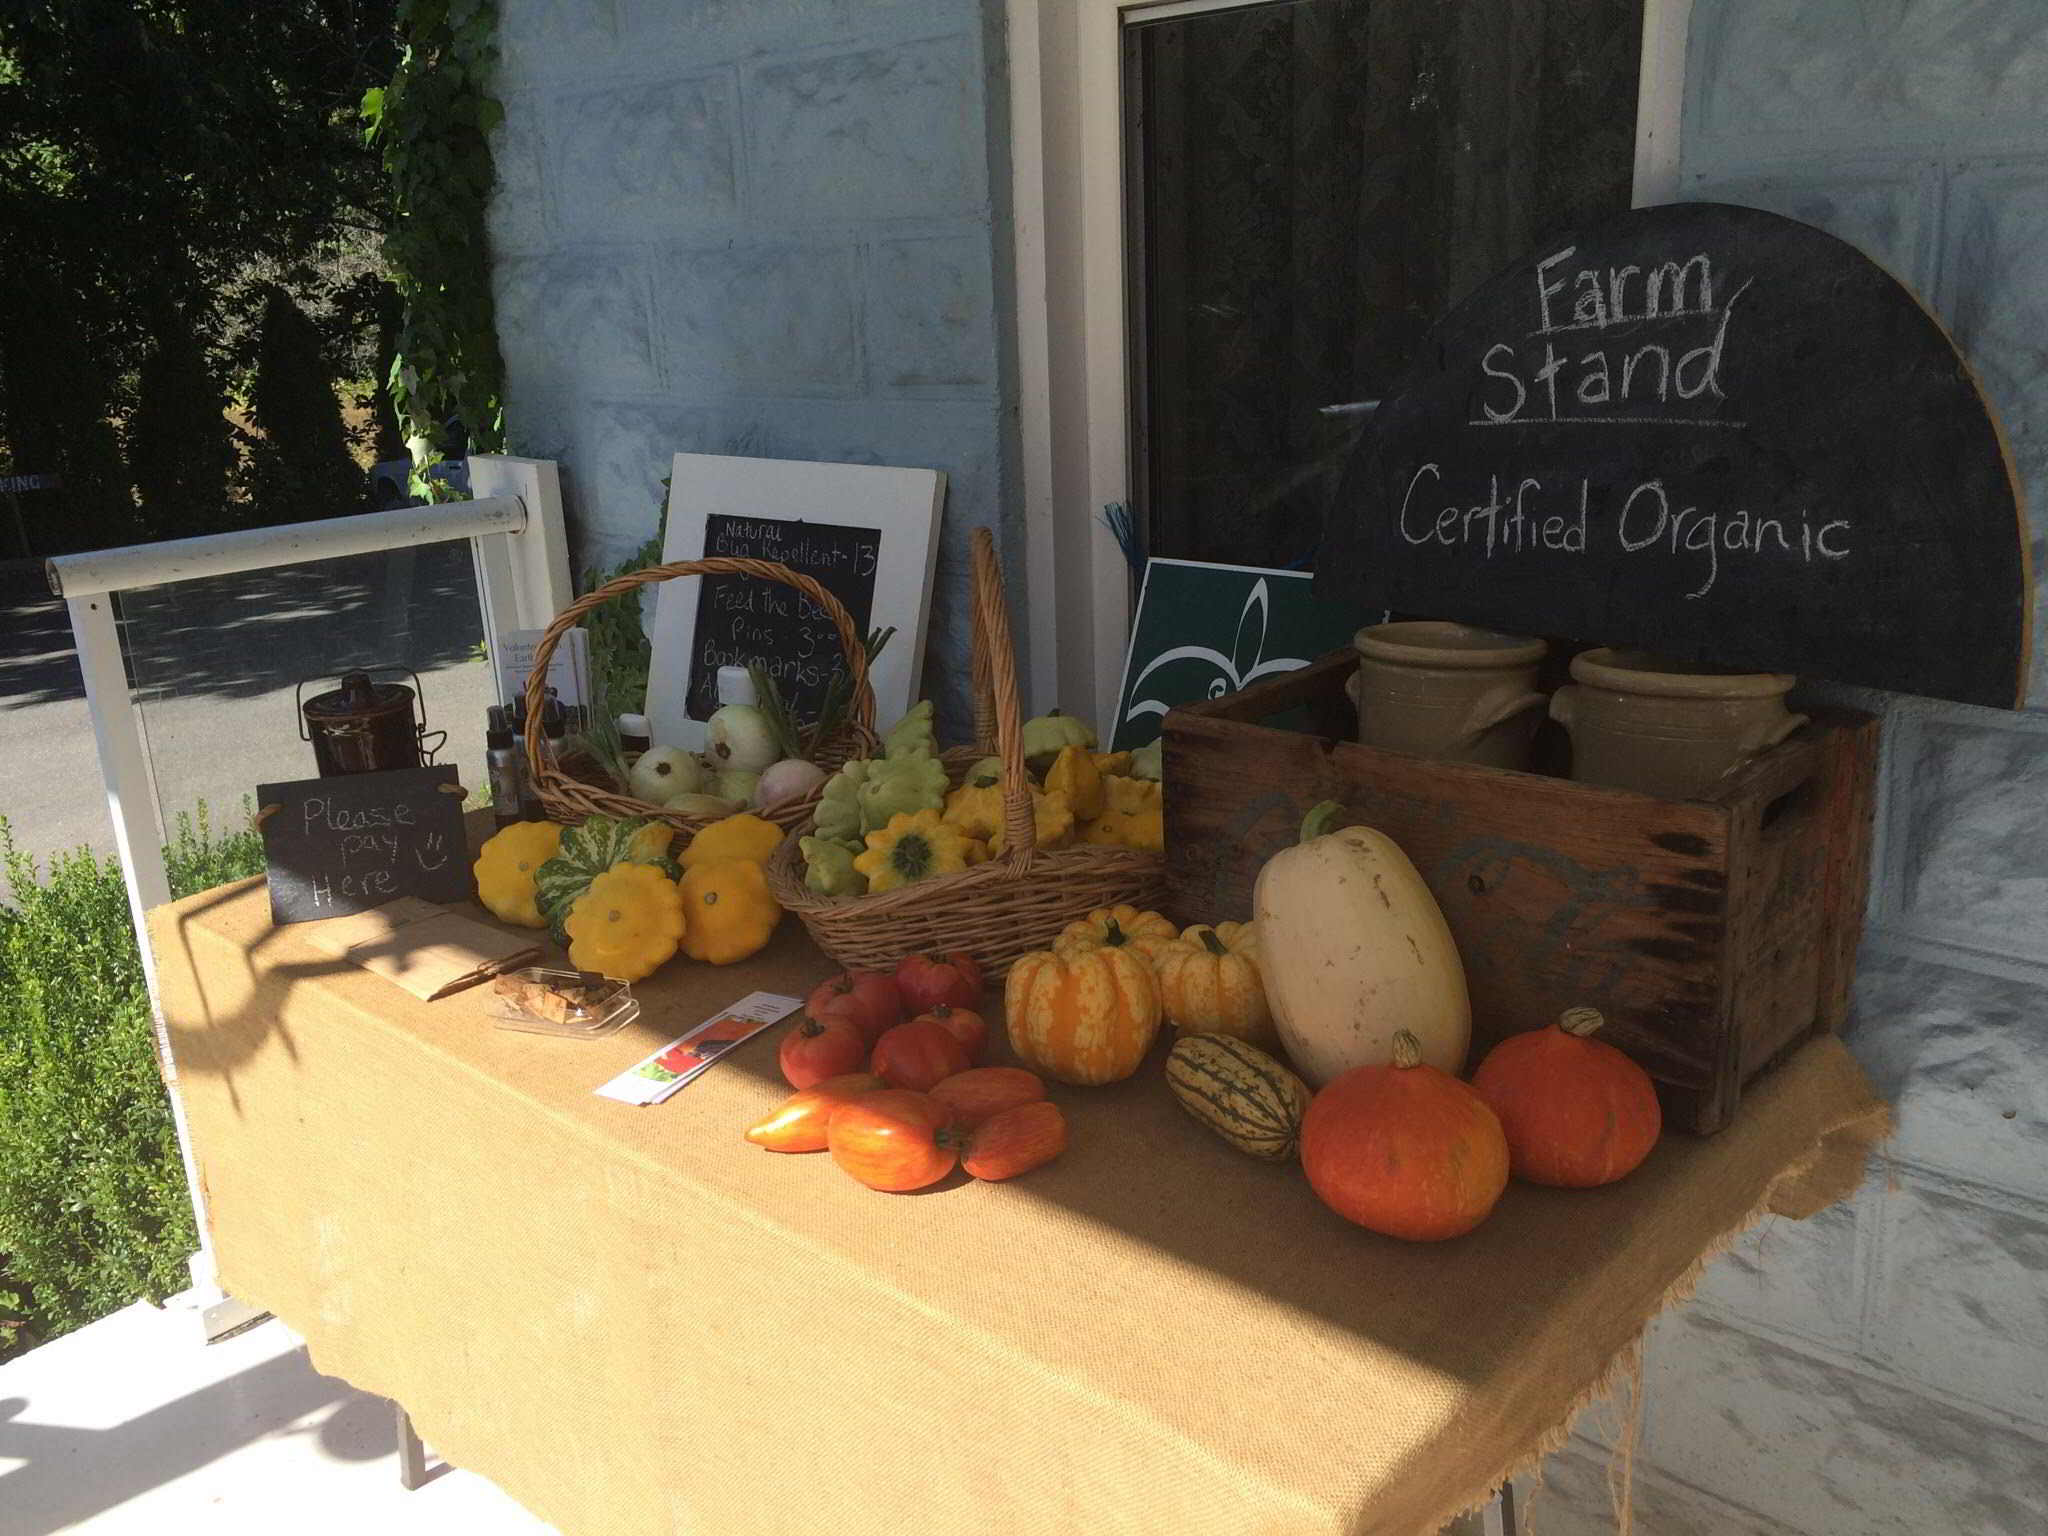 Earthwise Society Farm in Agassiz - farm market